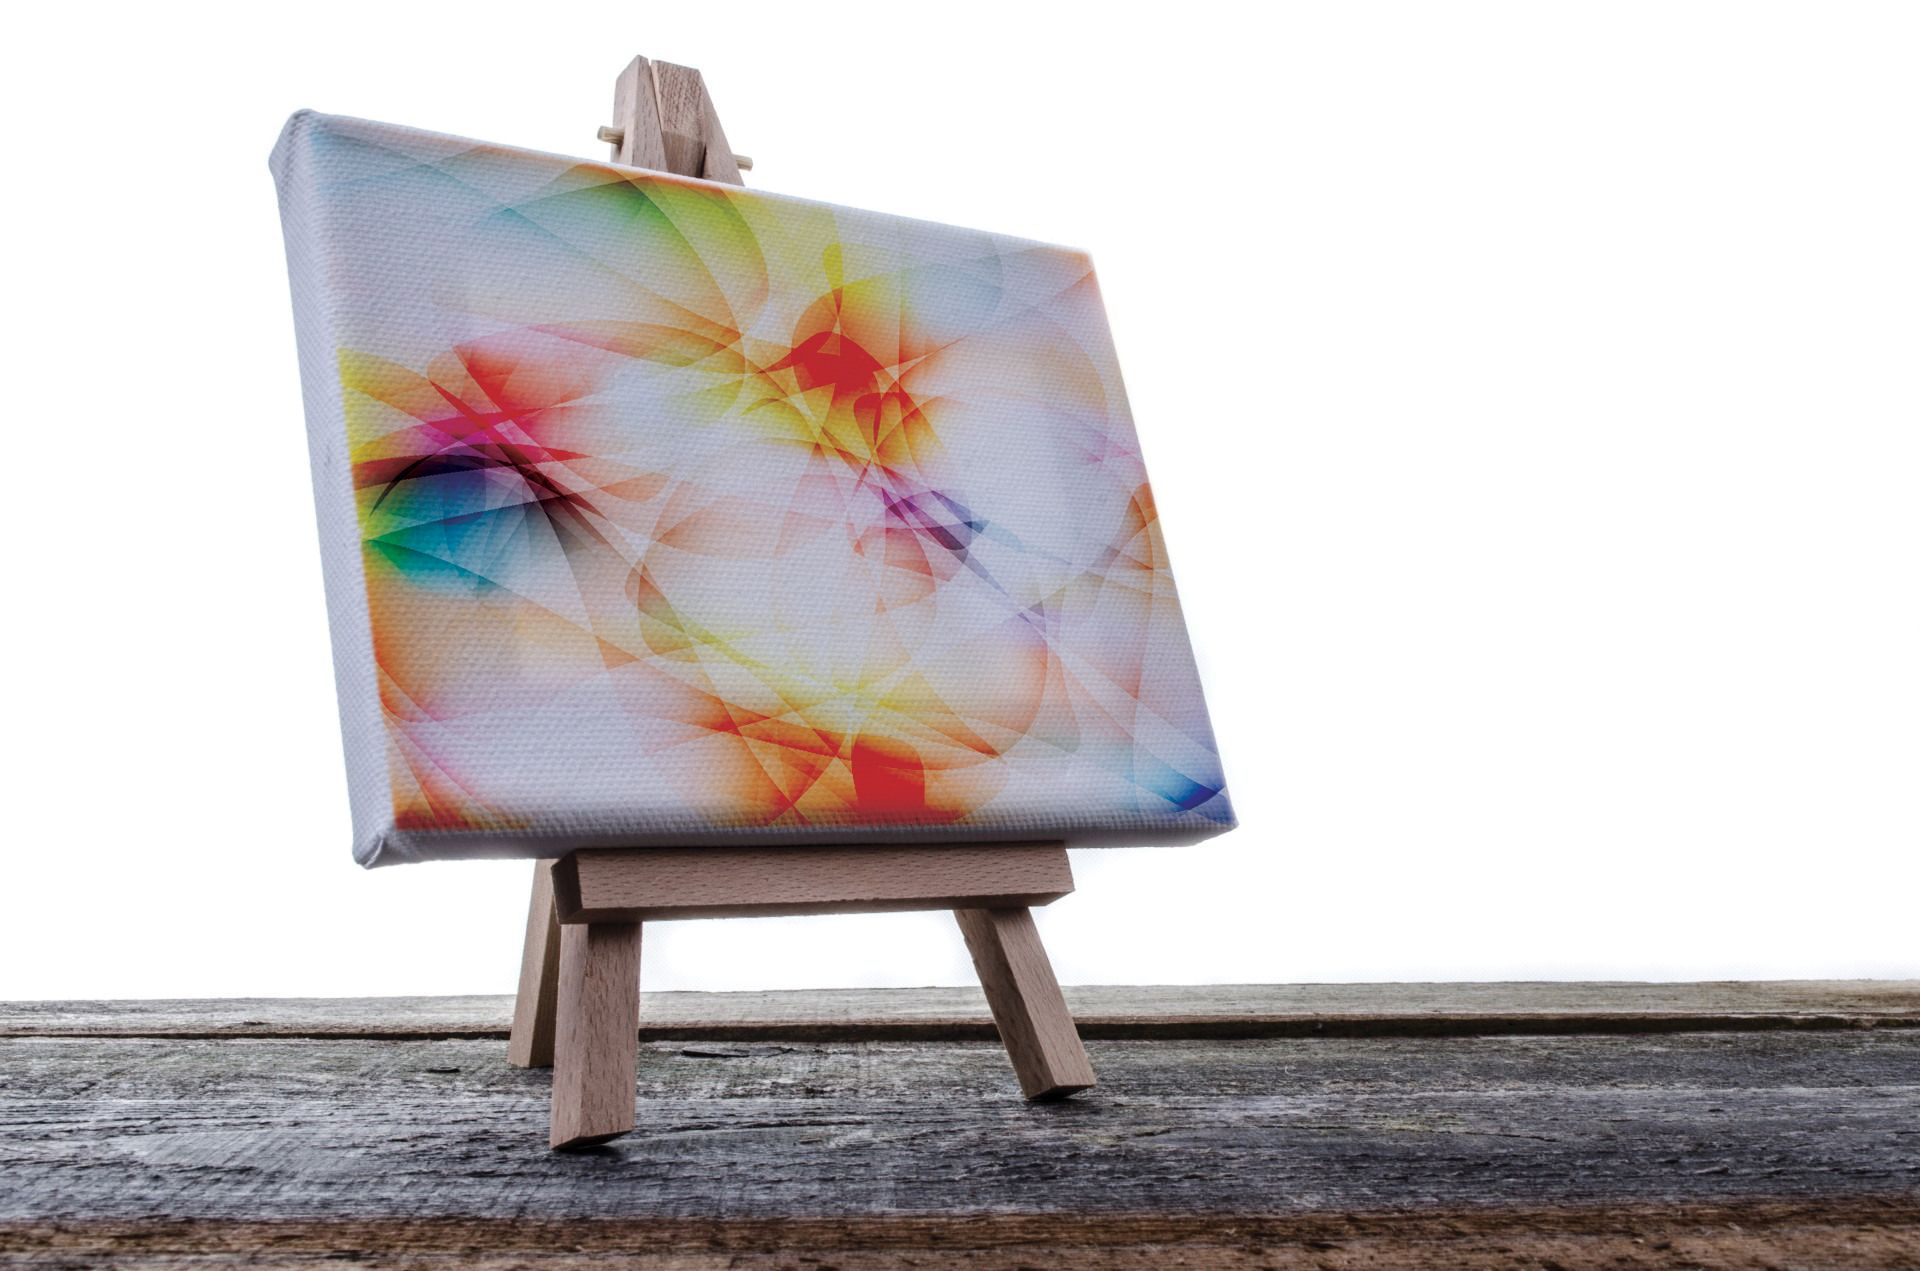 Color art facebook - Sell Canvas Abstract A09 Color Art Background Https Www Facebook Com